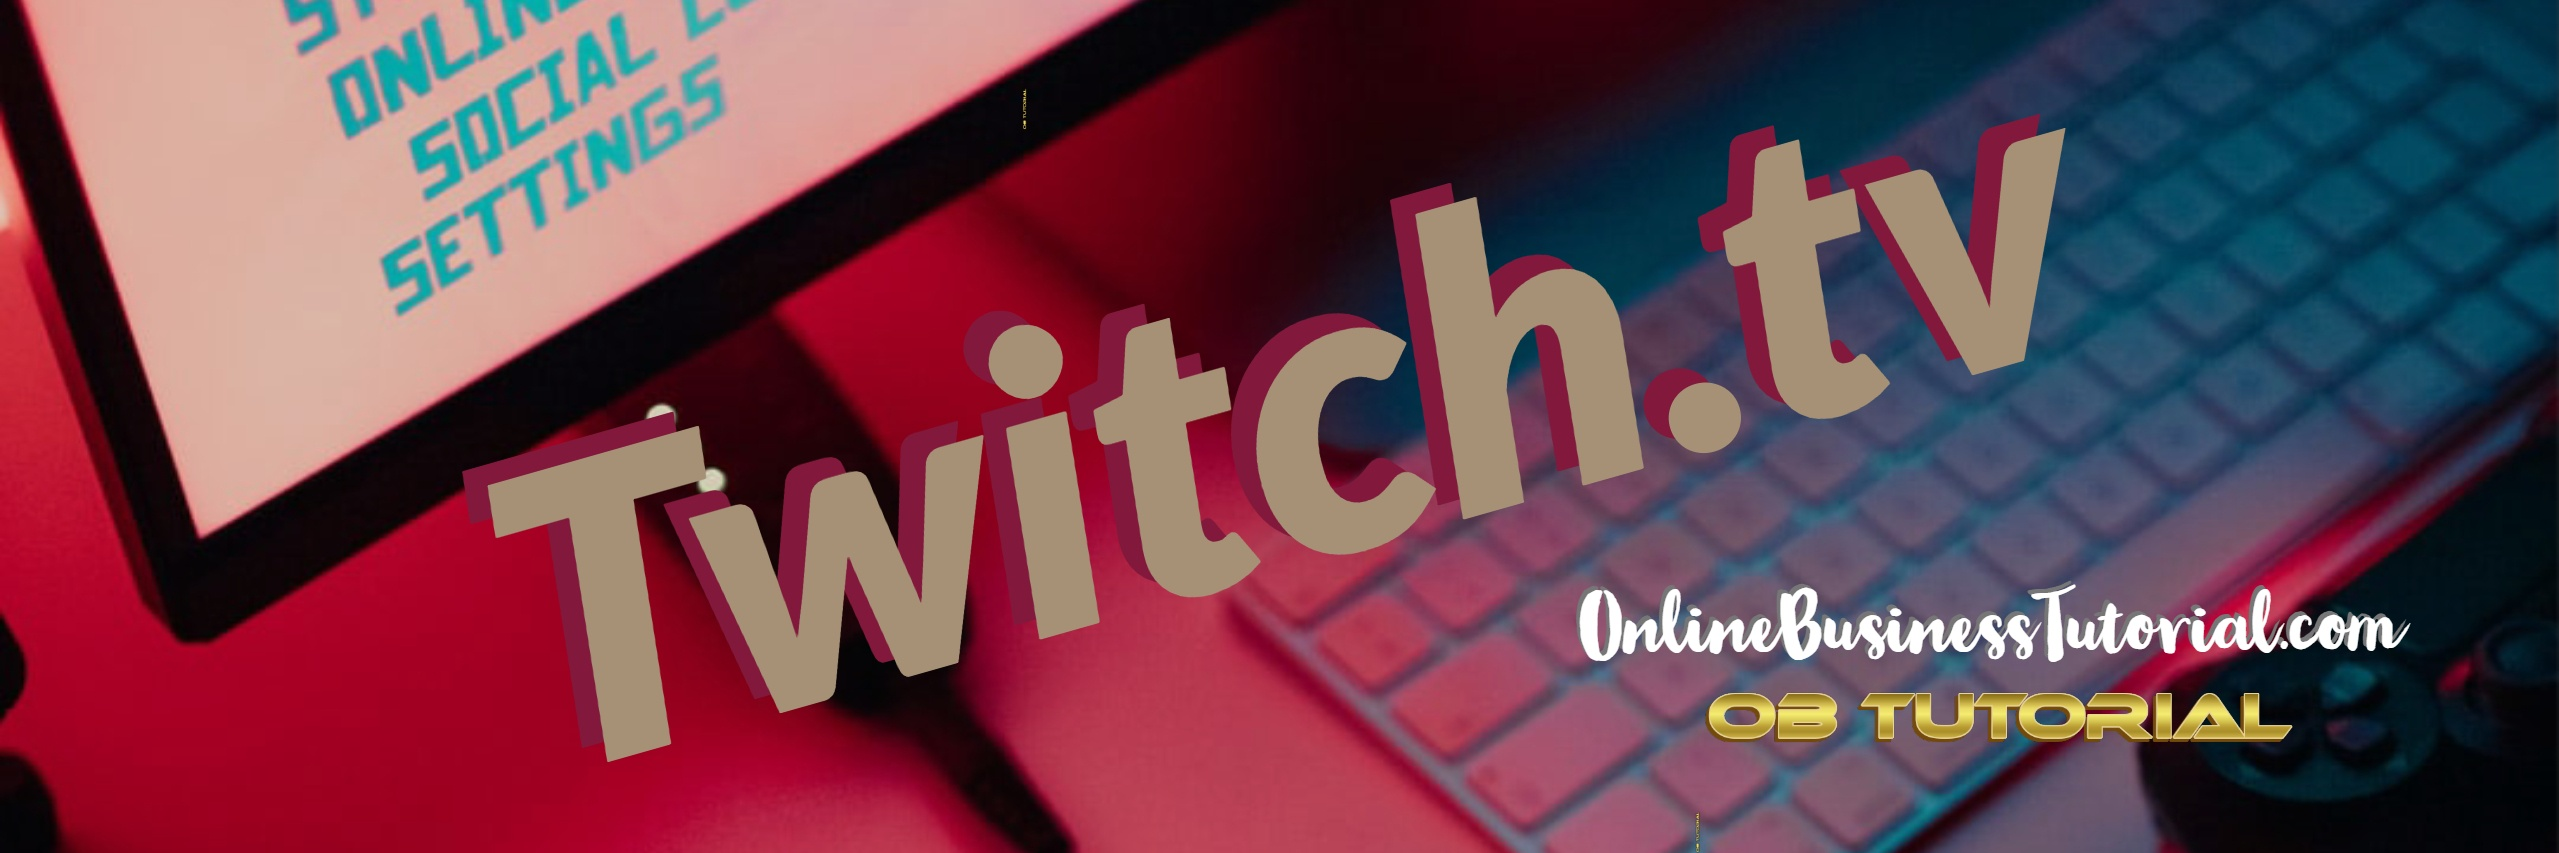 Twitch is the world's leading live streaming platform for gamers and the things we love.